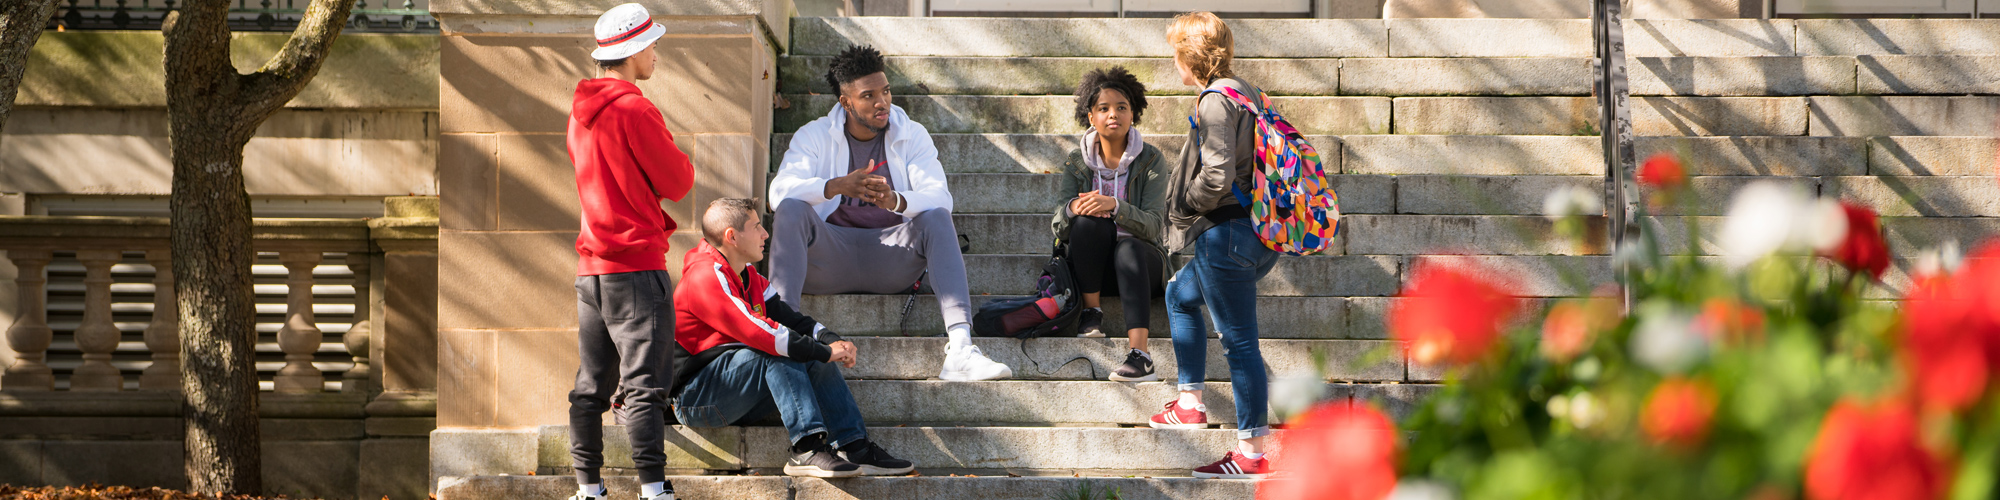 Students talking and sitting on the steps outside of Old Main